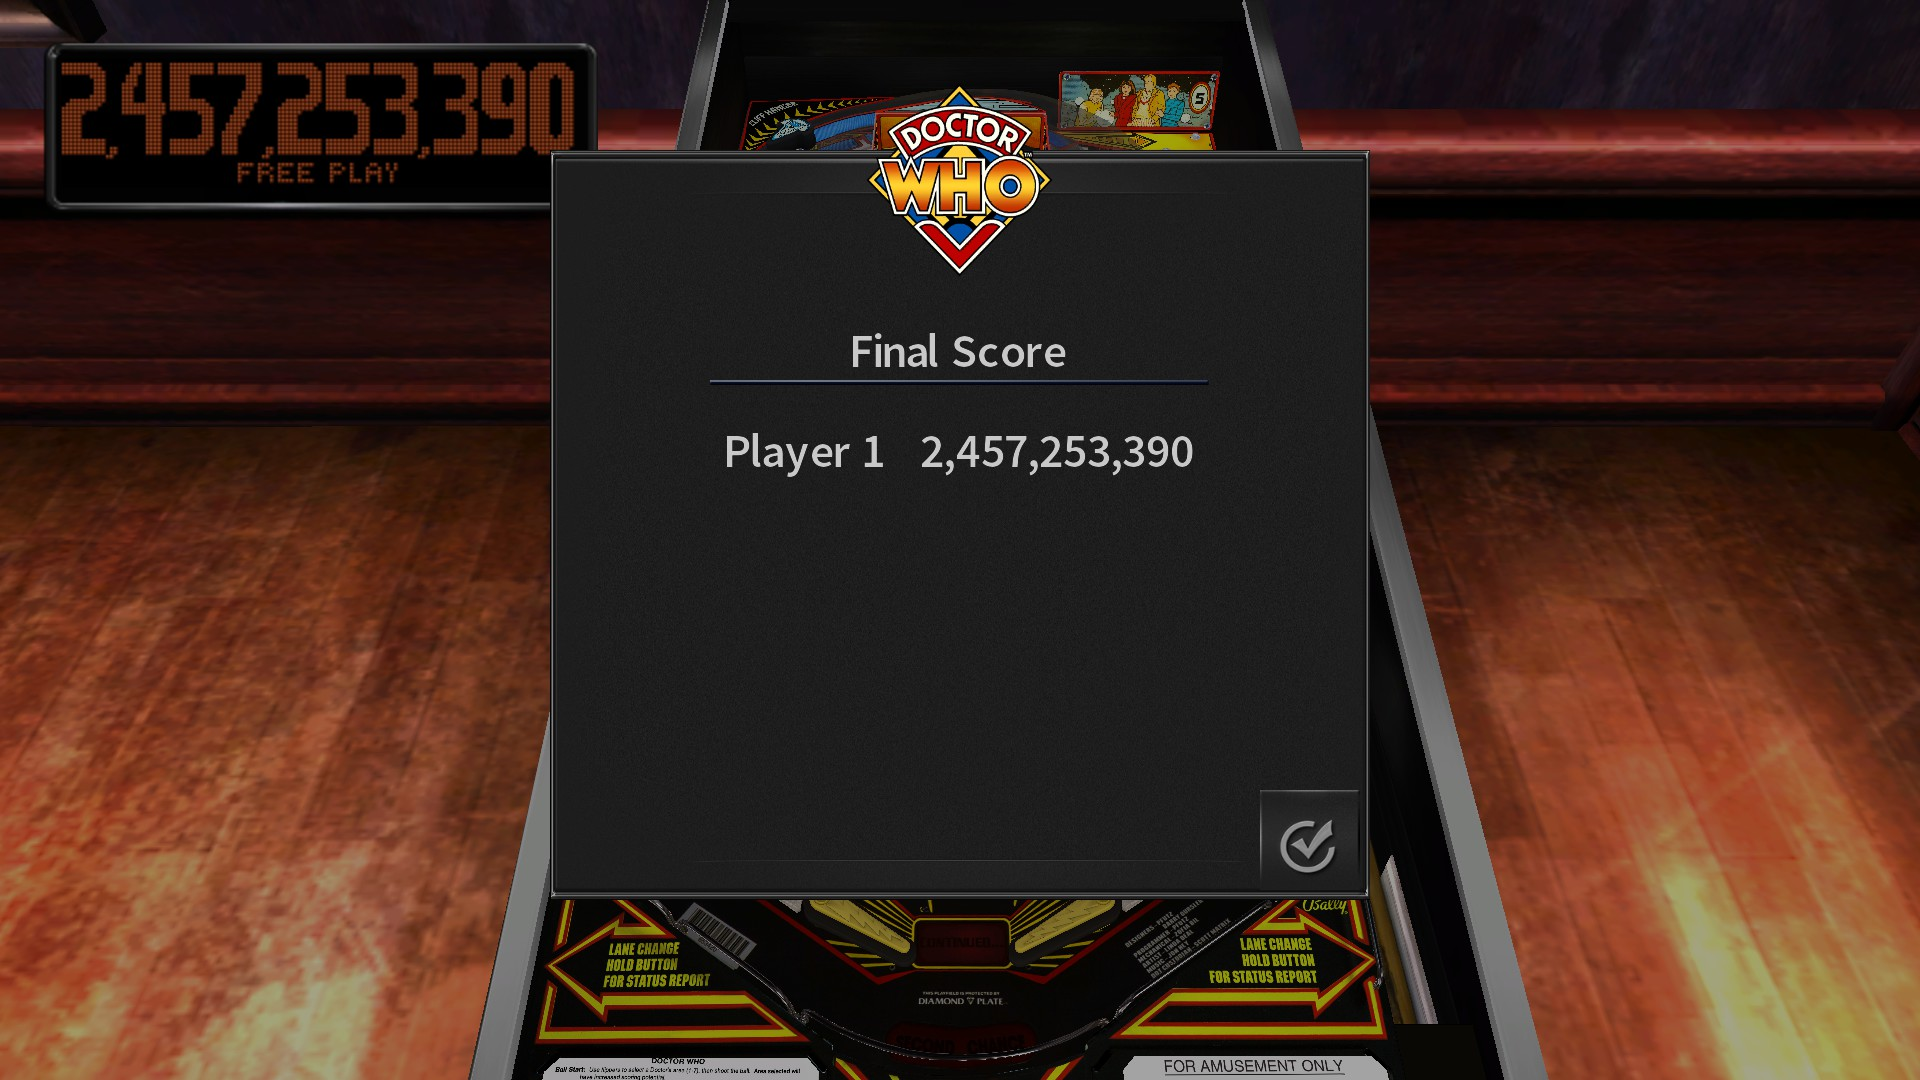 TheTrickster: Pinball Arcade: Doctor Who (PC) 2,457,253,390 points on 2016-11-21 06:25:23